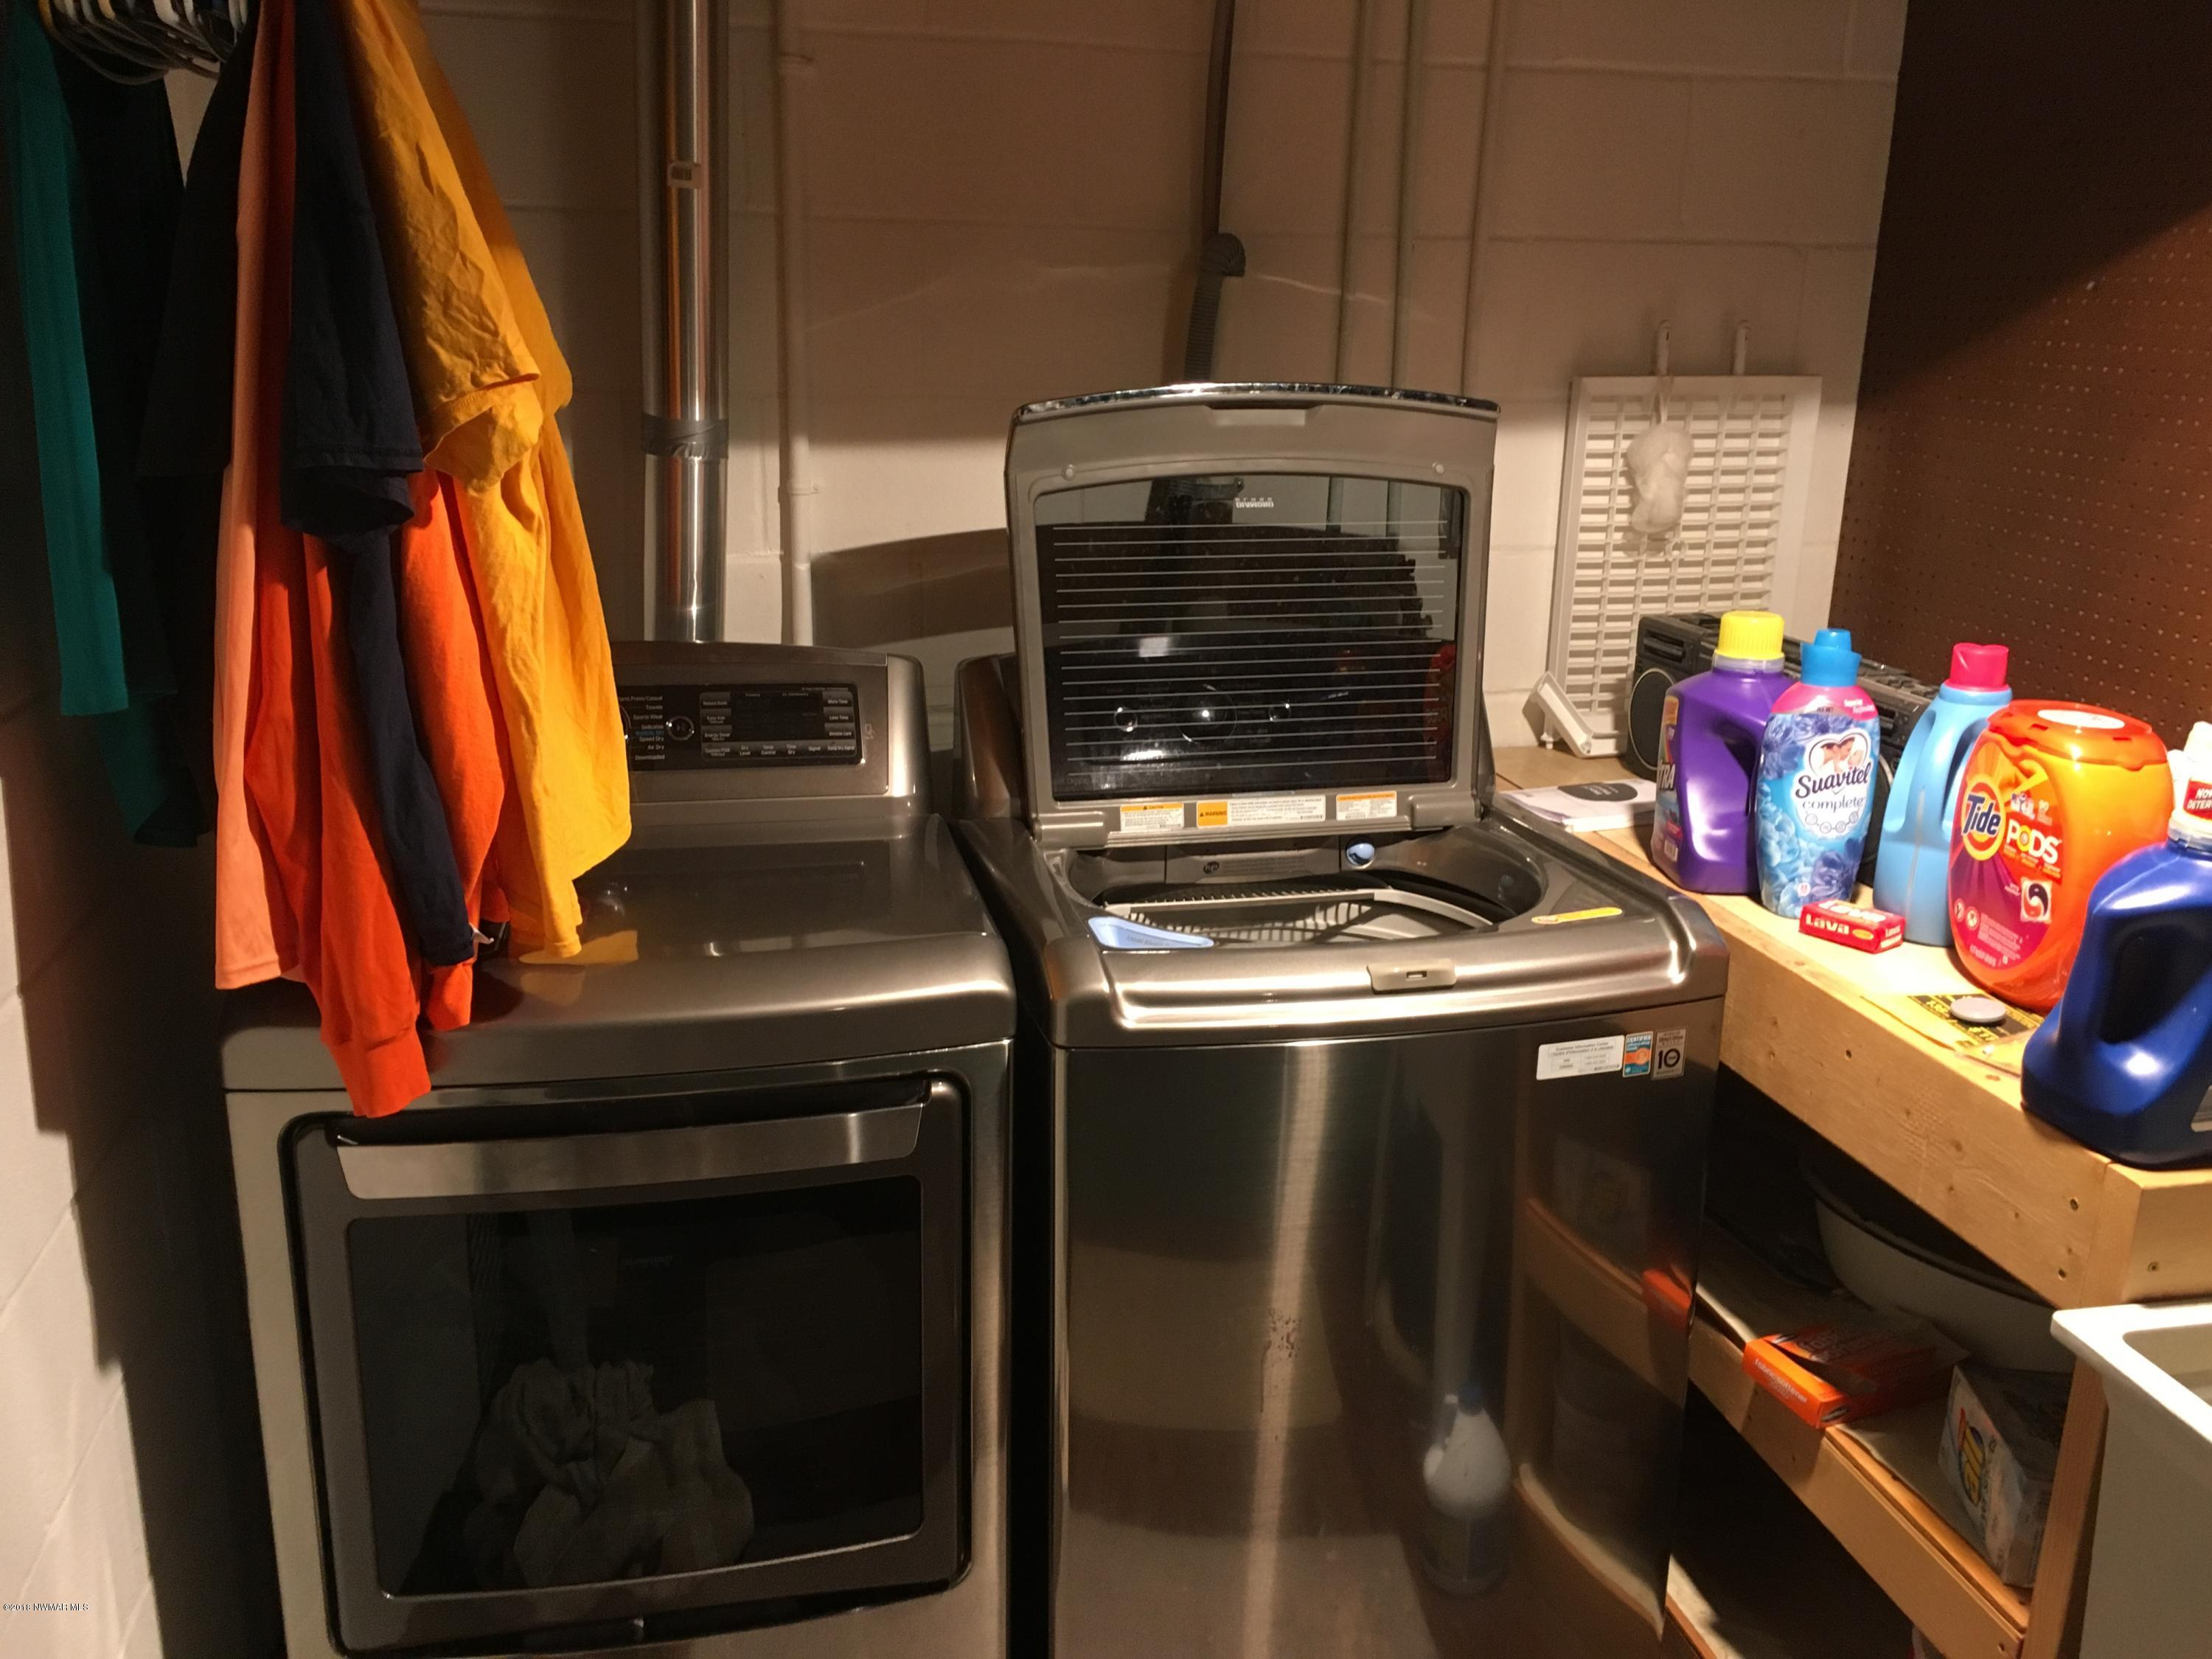 One year old-stainless steel washer and dryer.